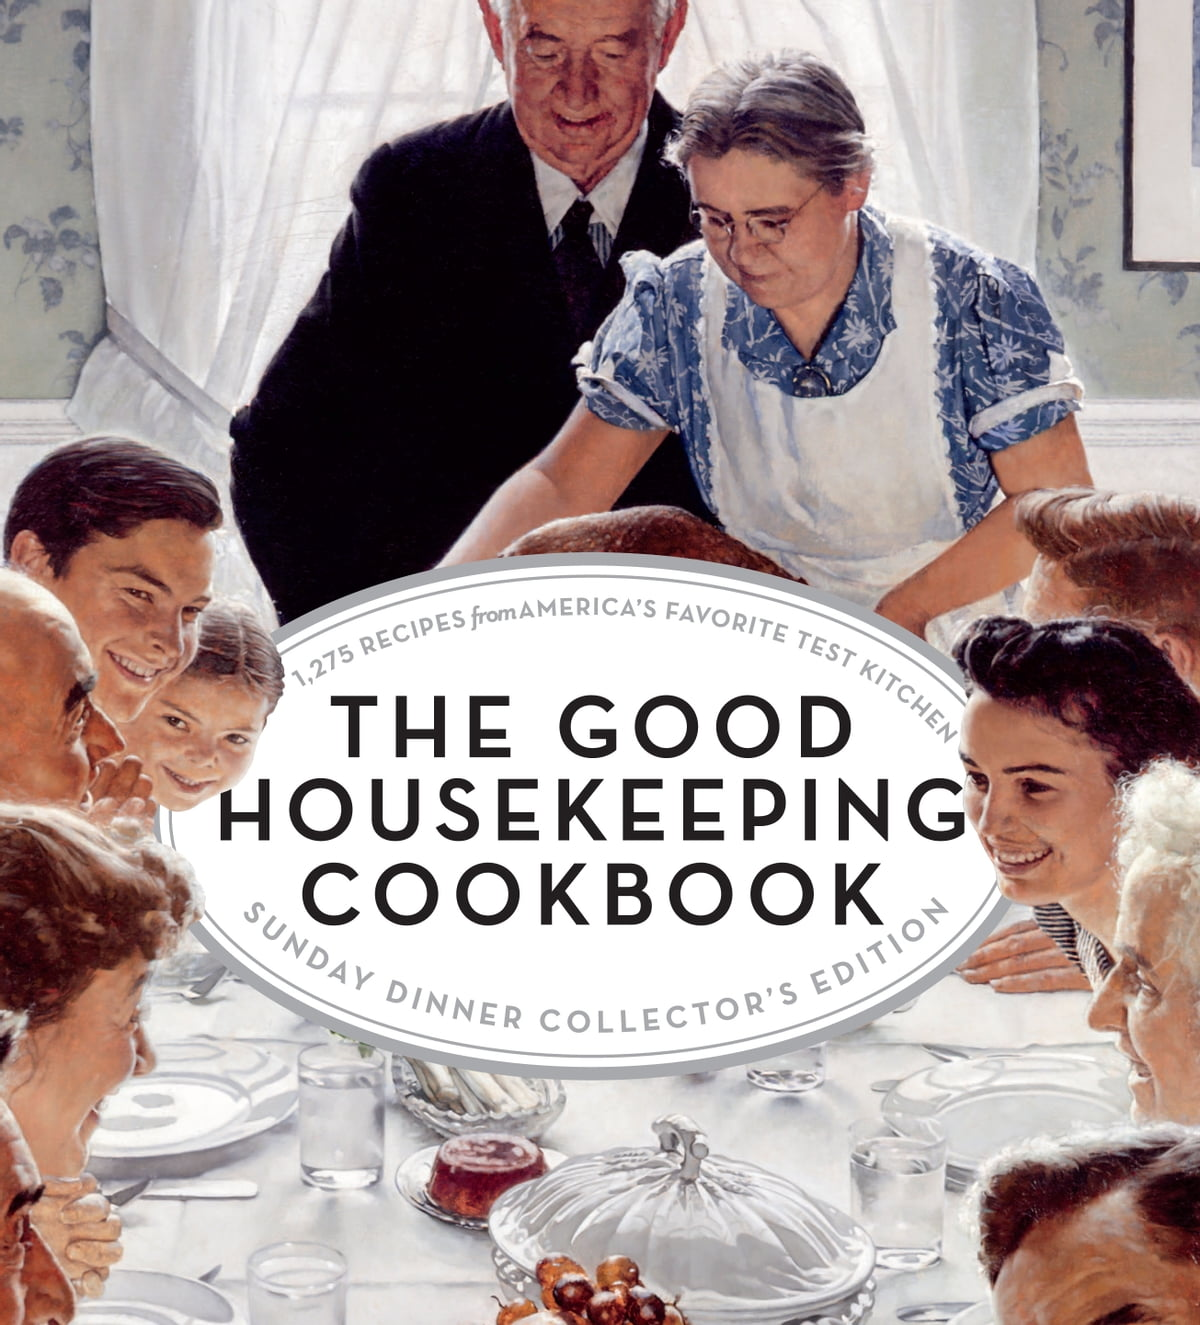 The Good Housekeeping Cookbook Sunday Dinner Collector\'s Edition ...